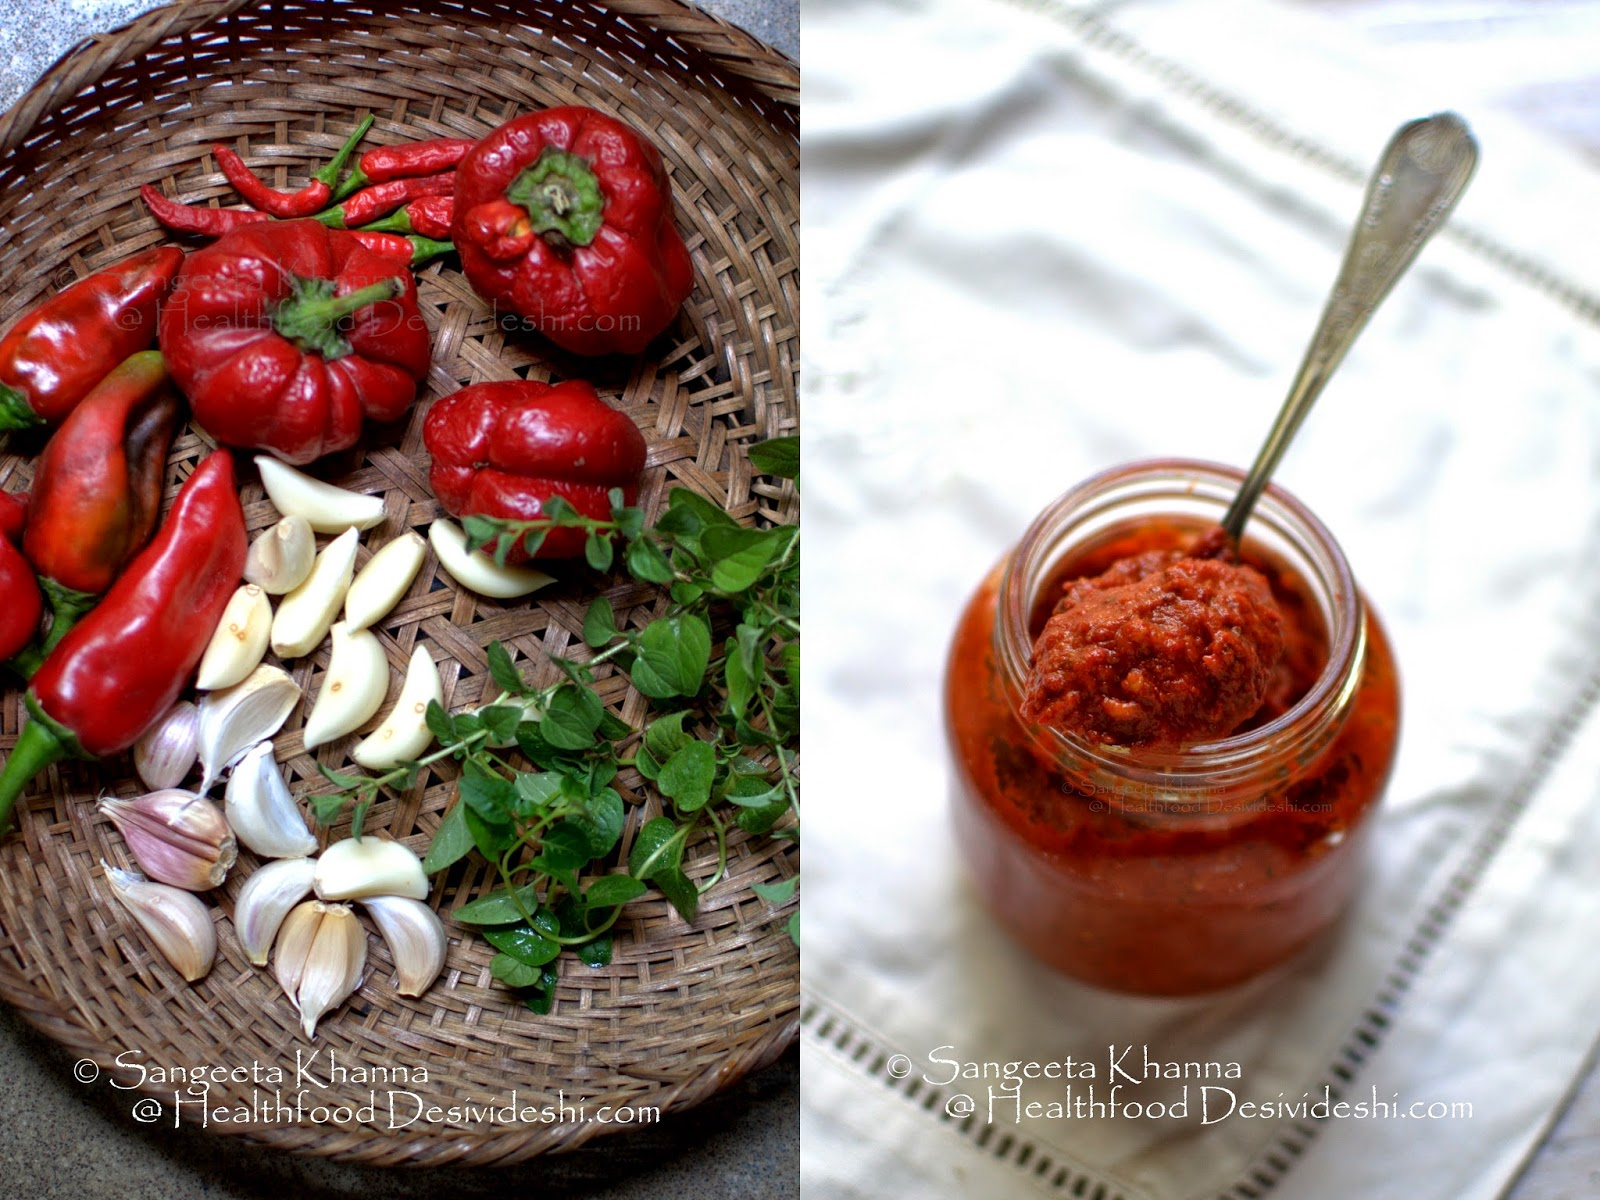 piri piri sauce or peri peri sauce recipe and grilled chicken wings with piri piri sauce